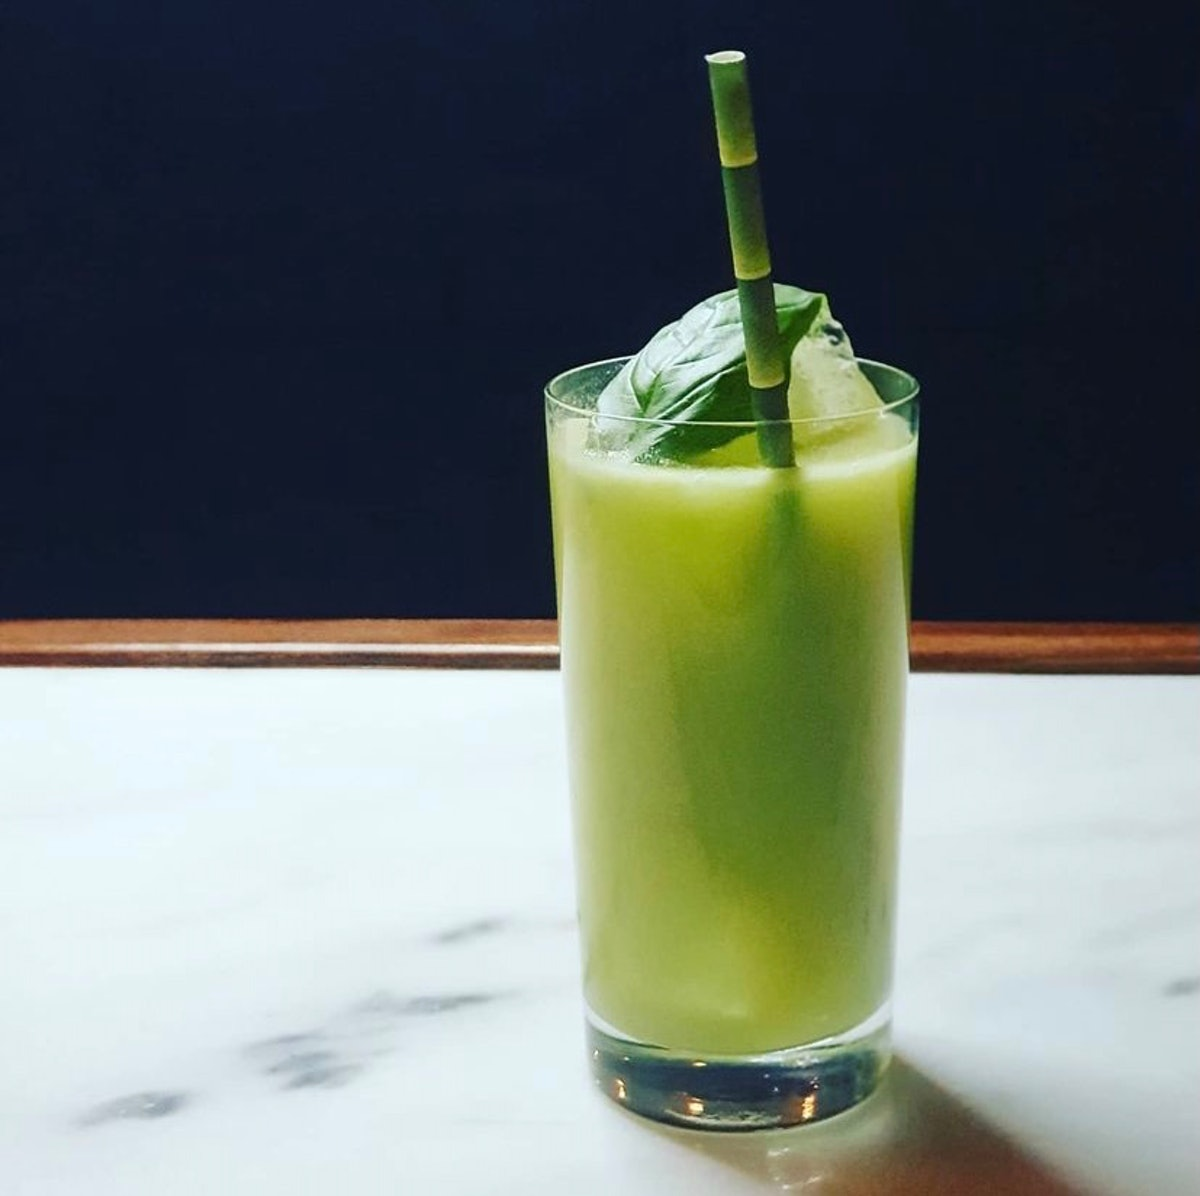 The Holy Basil is a cocktail at Longo Bros that's a great apéritif